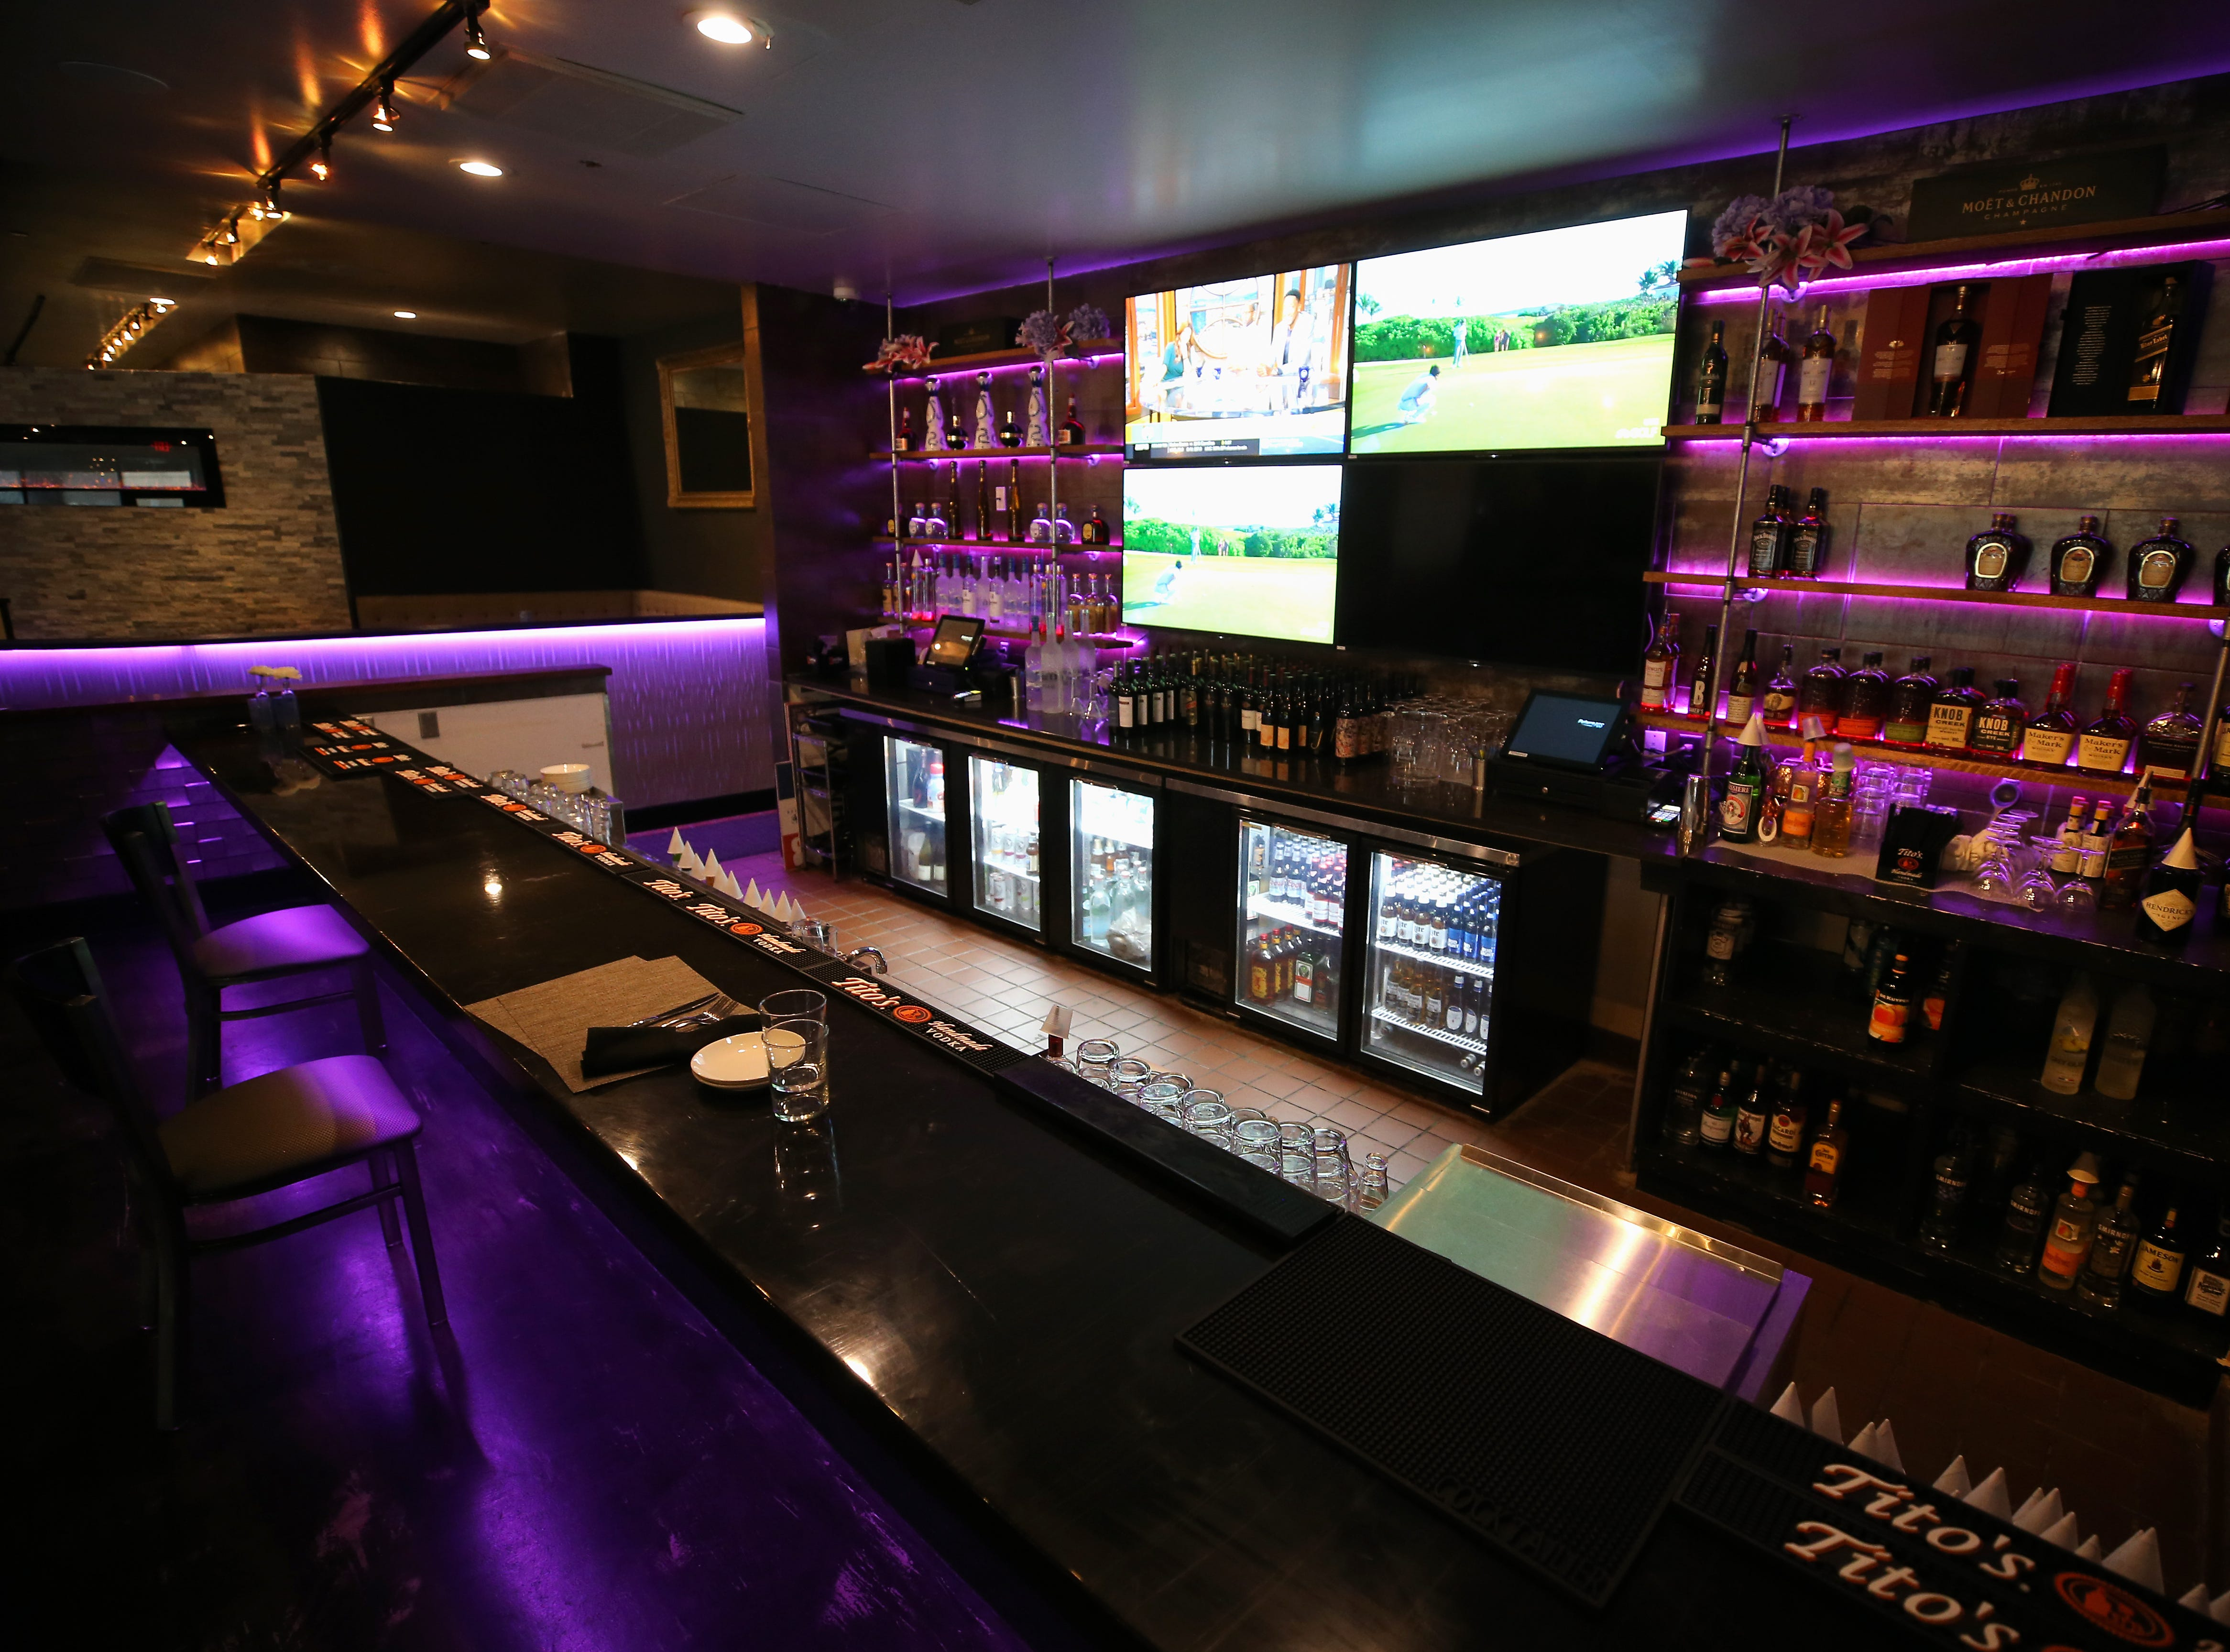 View of the lower bar, pictured, Tuesday, Jan. 15, 2019, at Galla Park restaurant at The Banks in Cincinnati.